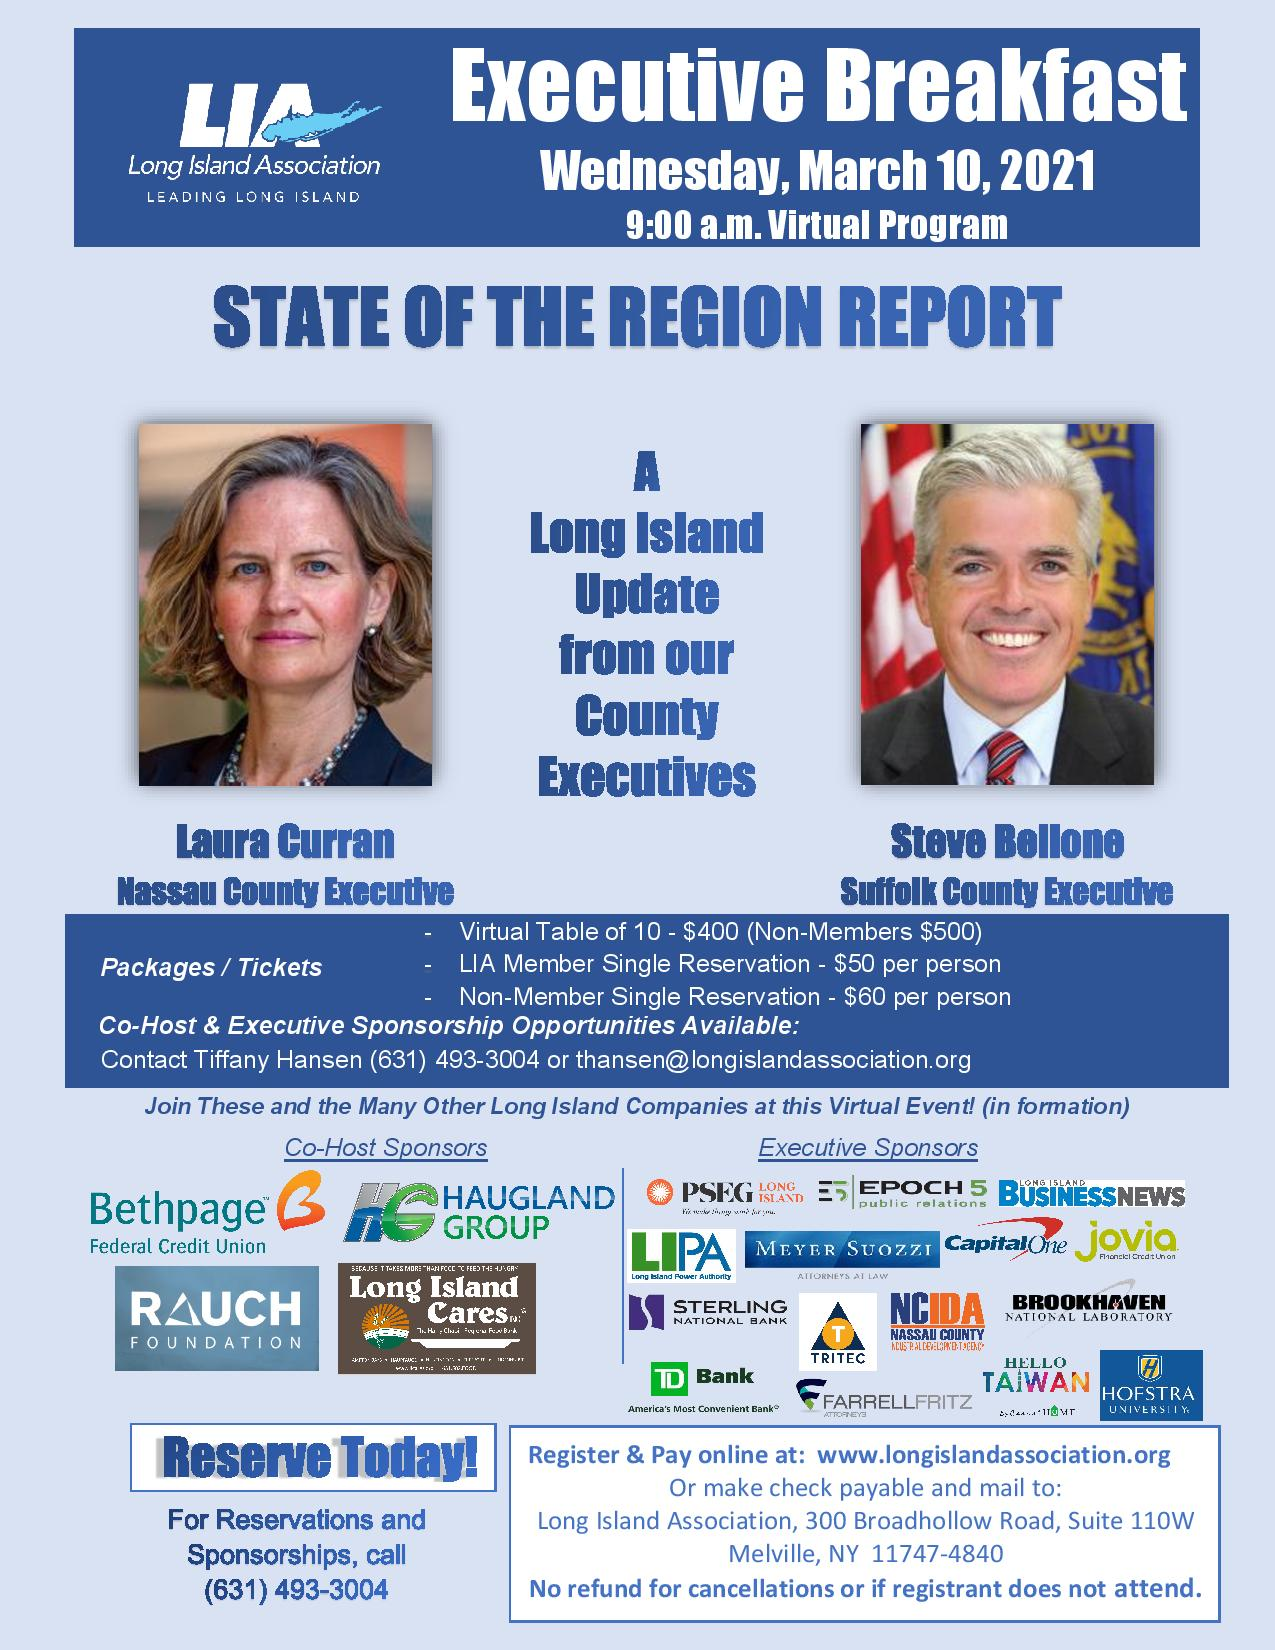 Executive-Breakfast-State-of-the-Region-031021-flyer-with-sponsors.jpg